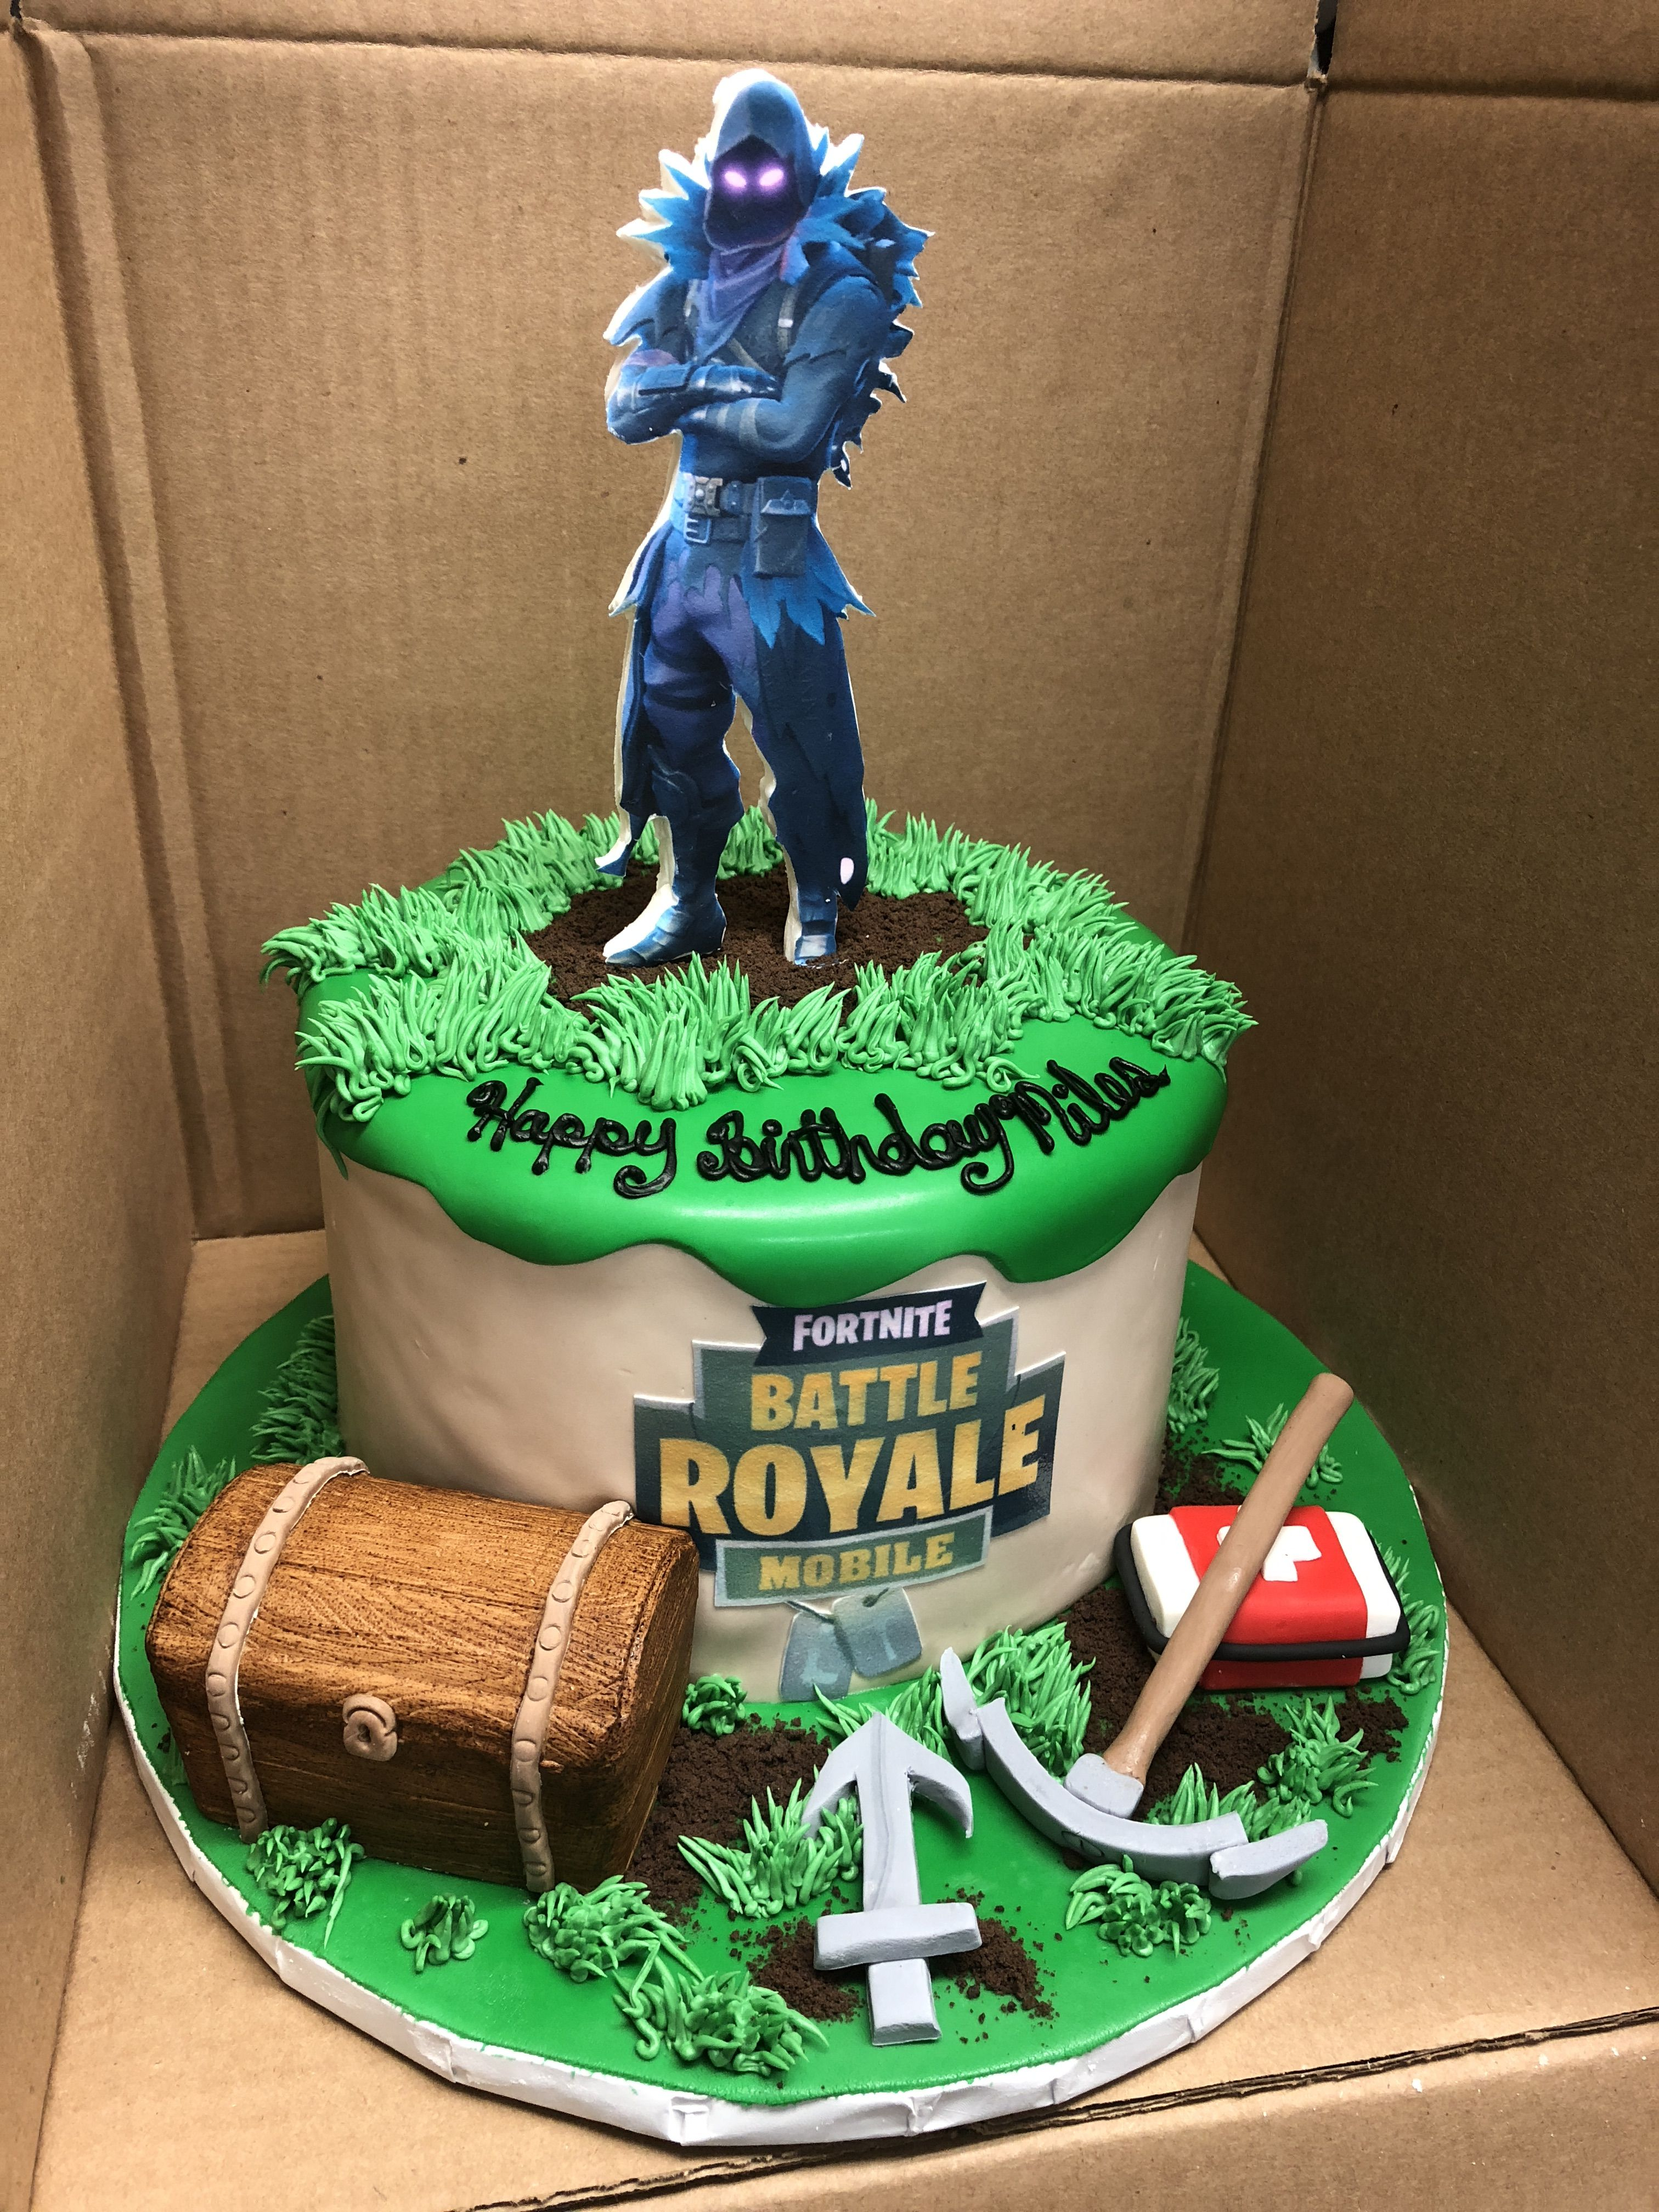 Pin by JenniCakes on Video game cakes Video game cakes